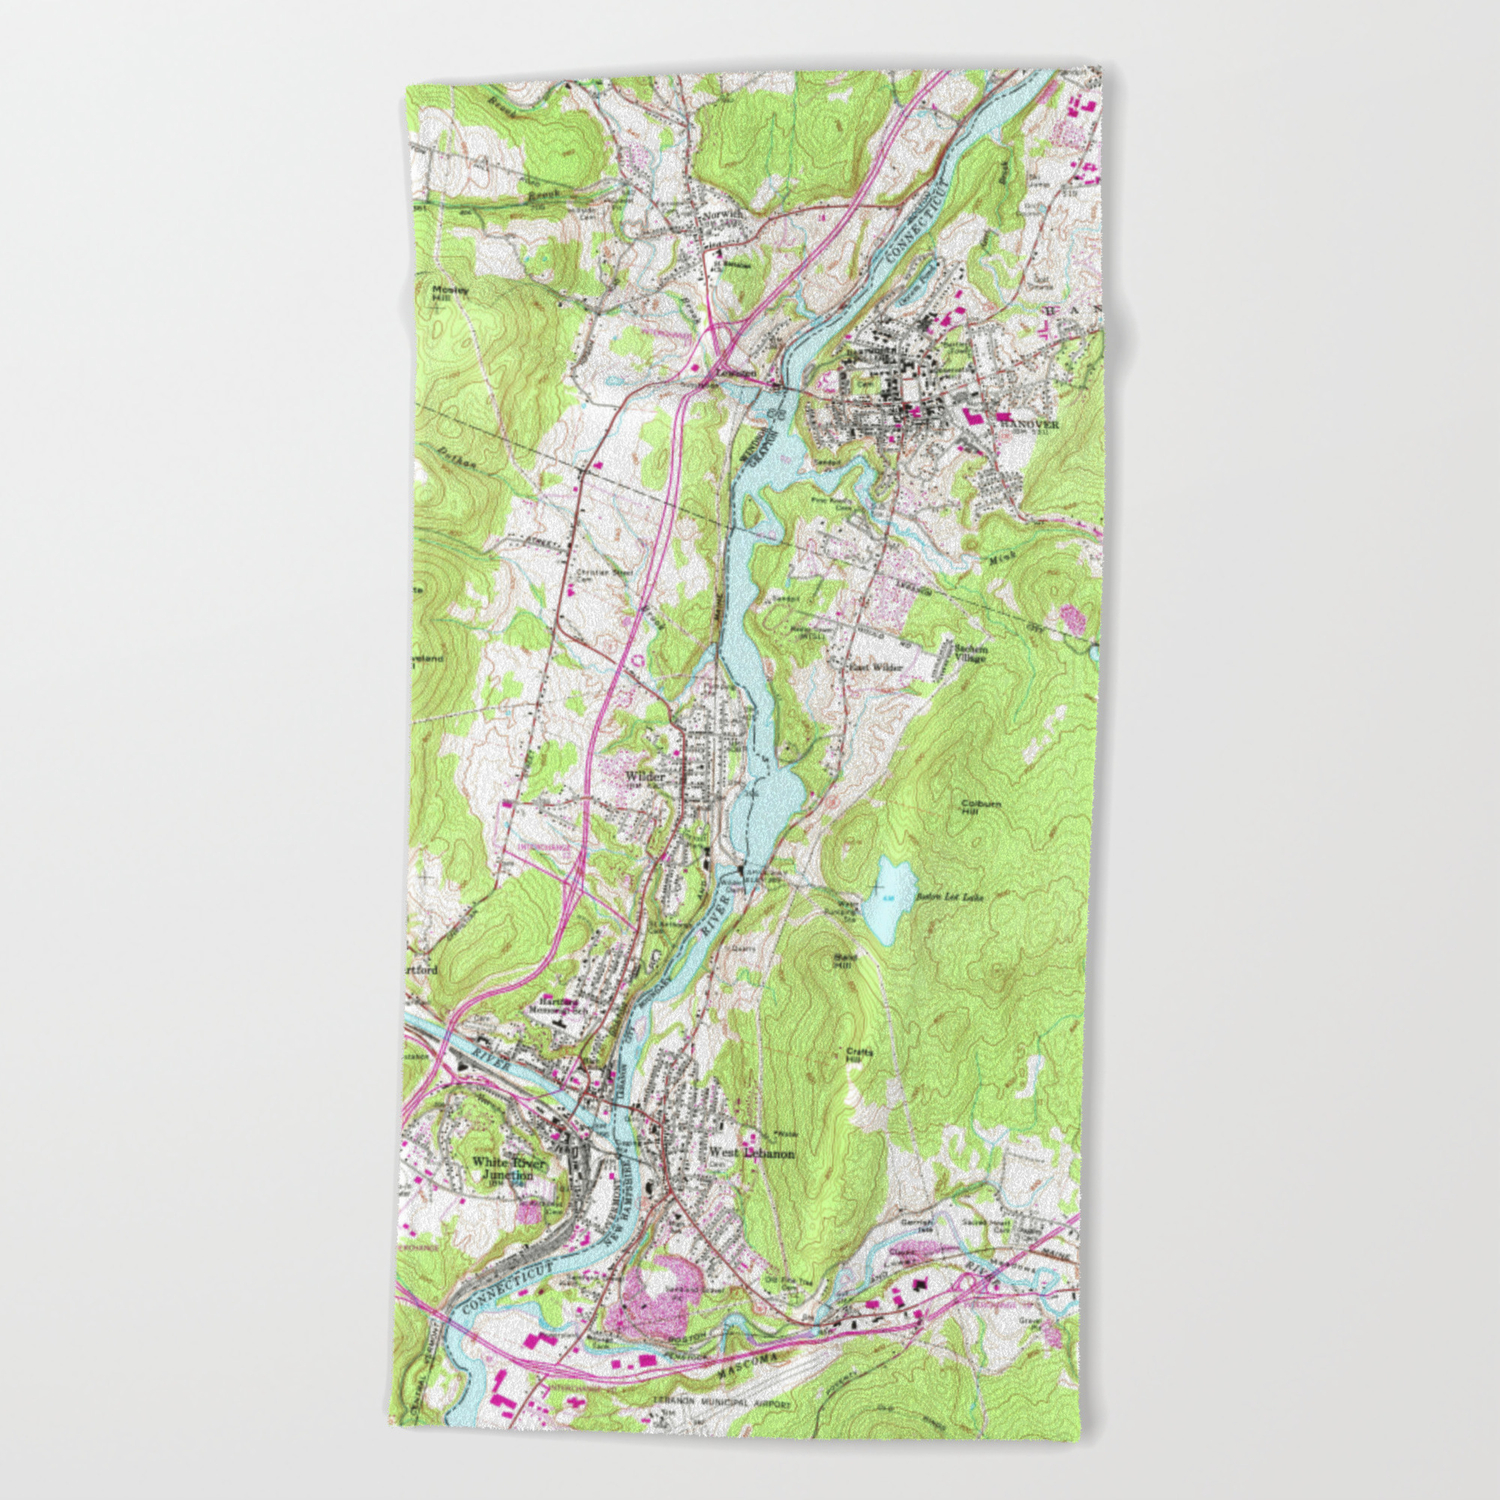 Vintage Lebanon Hanover New Hampshire Map 1959 Beach Towel By Bravuramedia Society6,Best Places To Travel In December And January